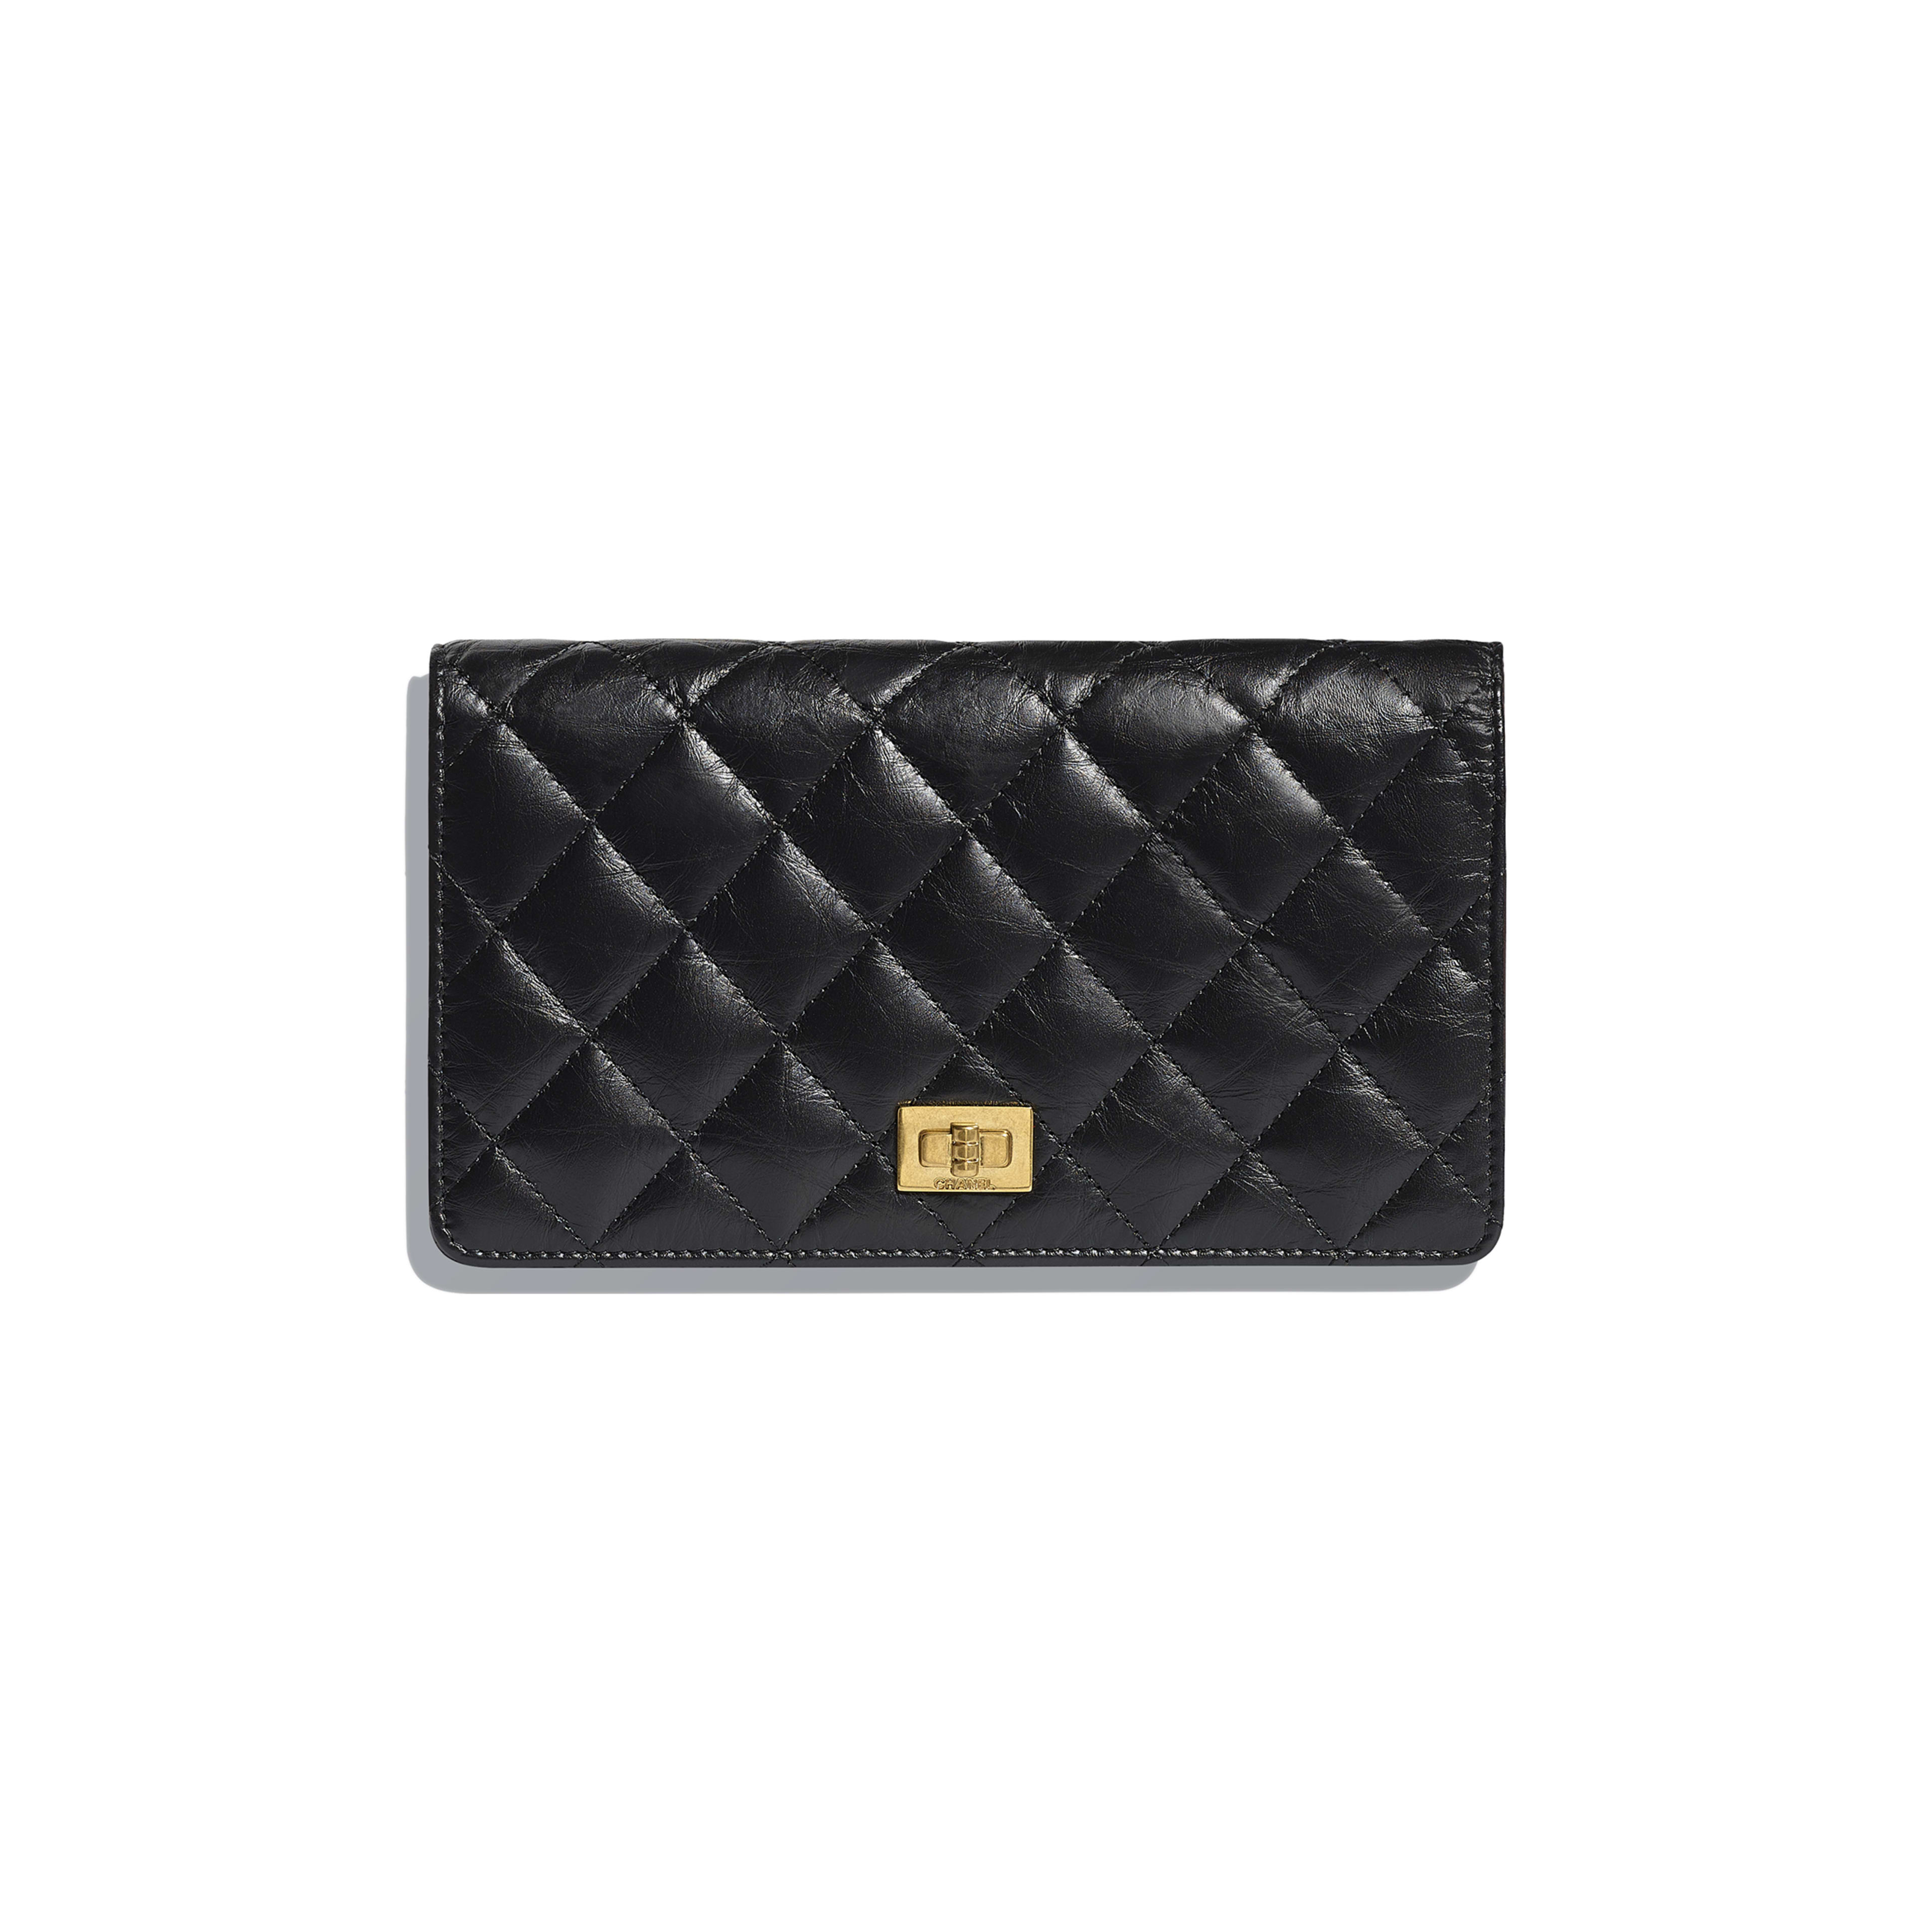 Double Wallet - Black - Aged Calfskin & Gold-Tone Metal - Default view - see full sized version